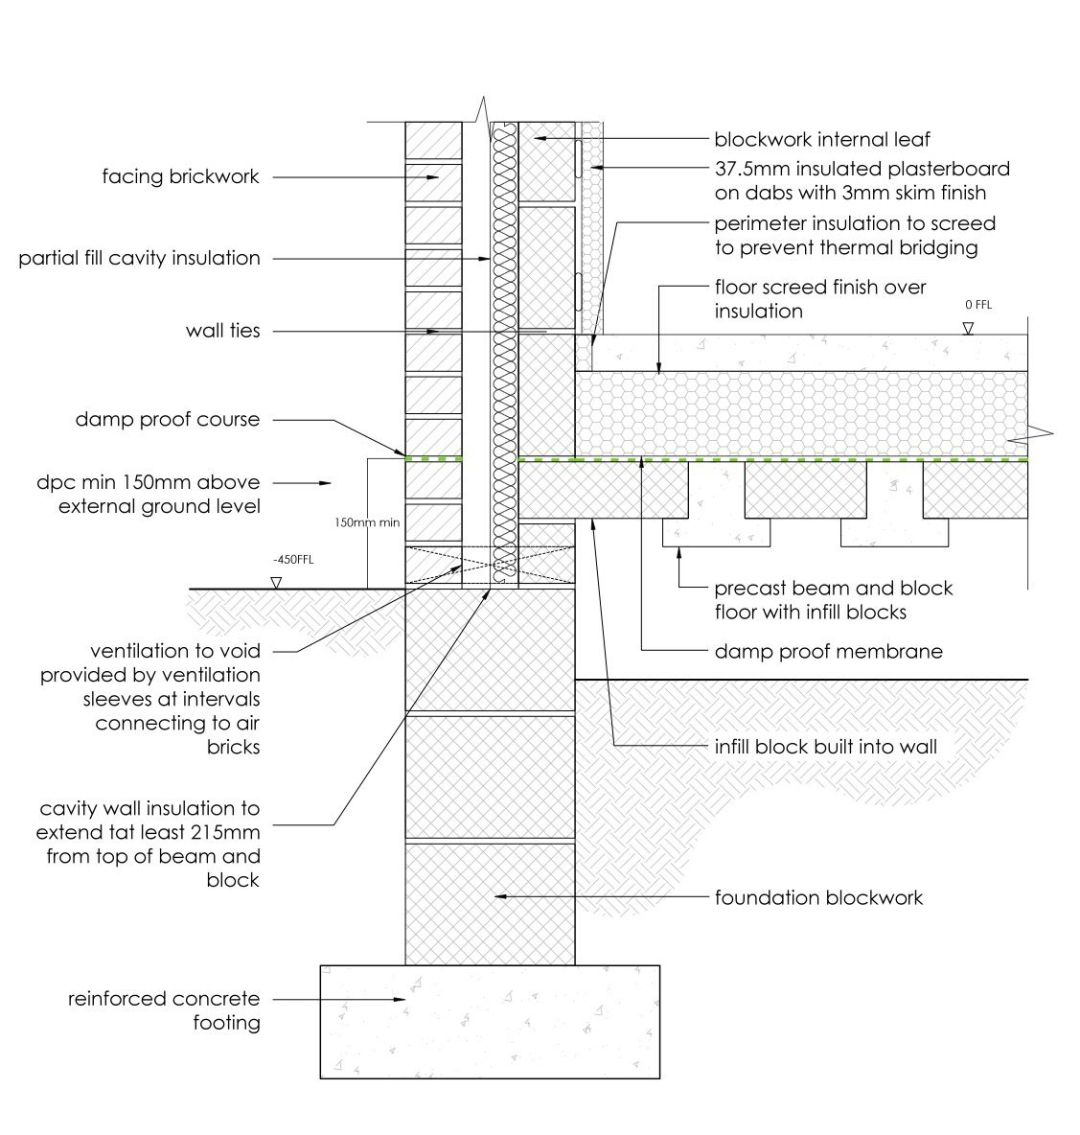 hight resolution of the inherent mass and damping qualities of concrete give beam and block flooring construction a good noise reduction additional sound insulation can also